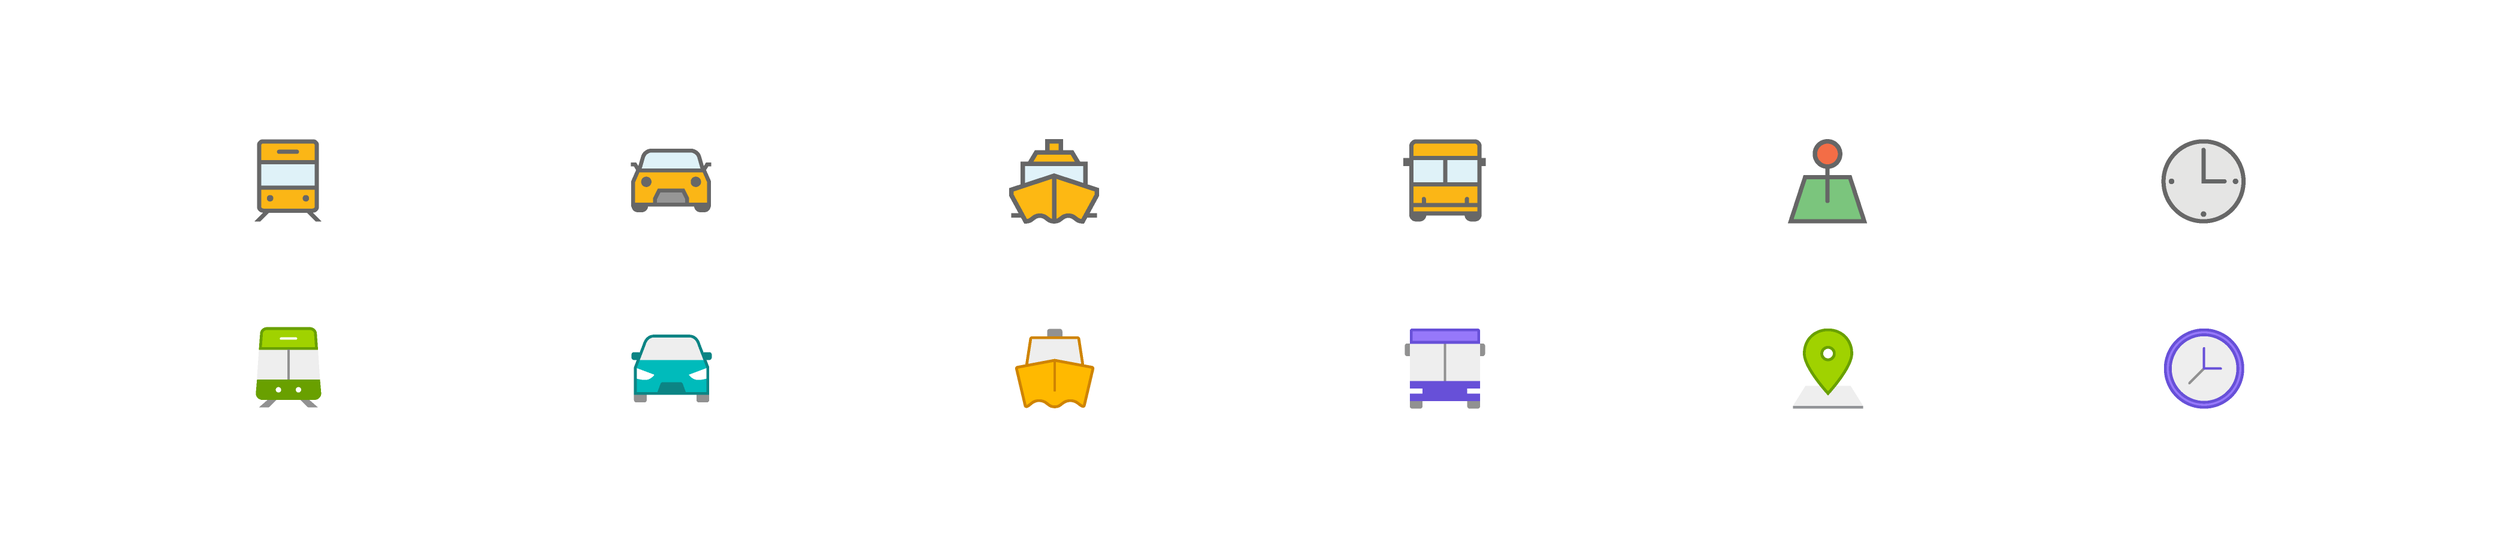 Final Icons-10.png